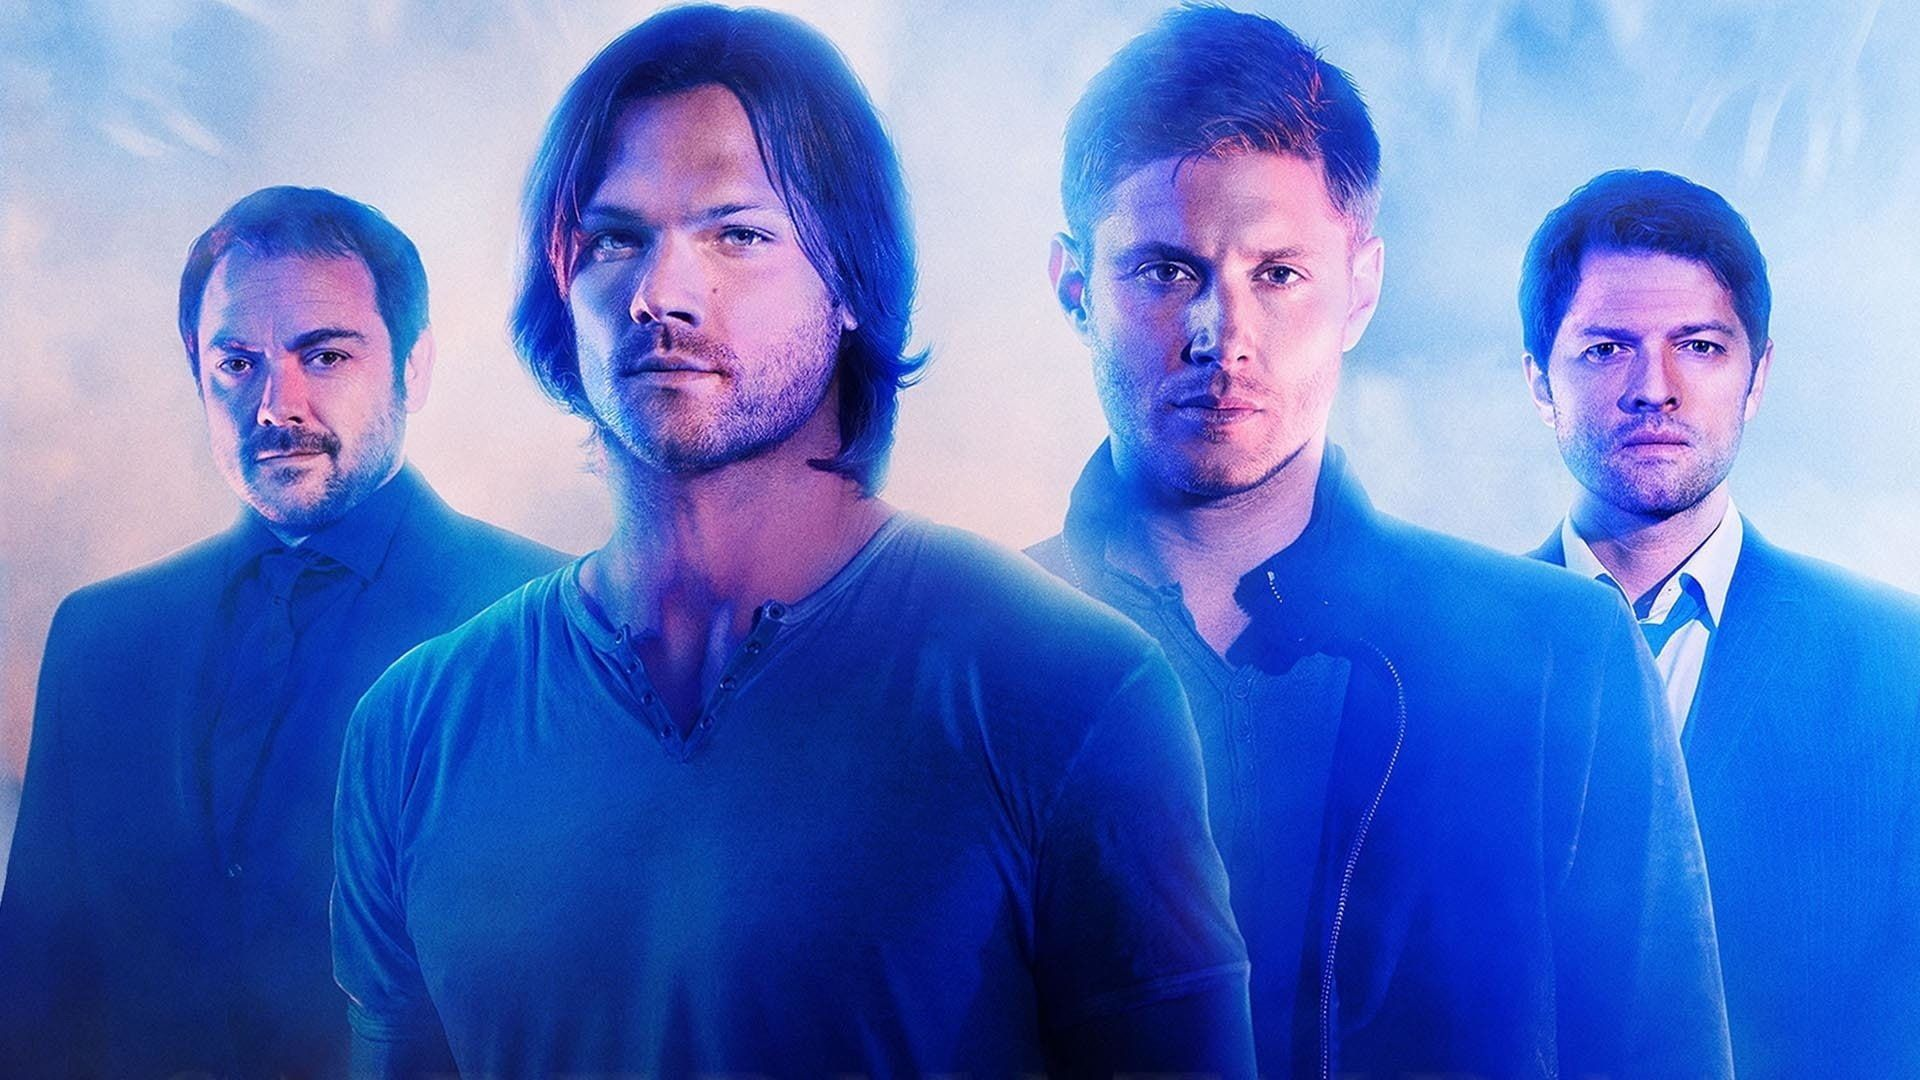 Tv Show Supernatural 1080p Wallpaper Hdwallpaper Desktop Supernatural Seasons Supernatural Episodes Supernatural Season 10